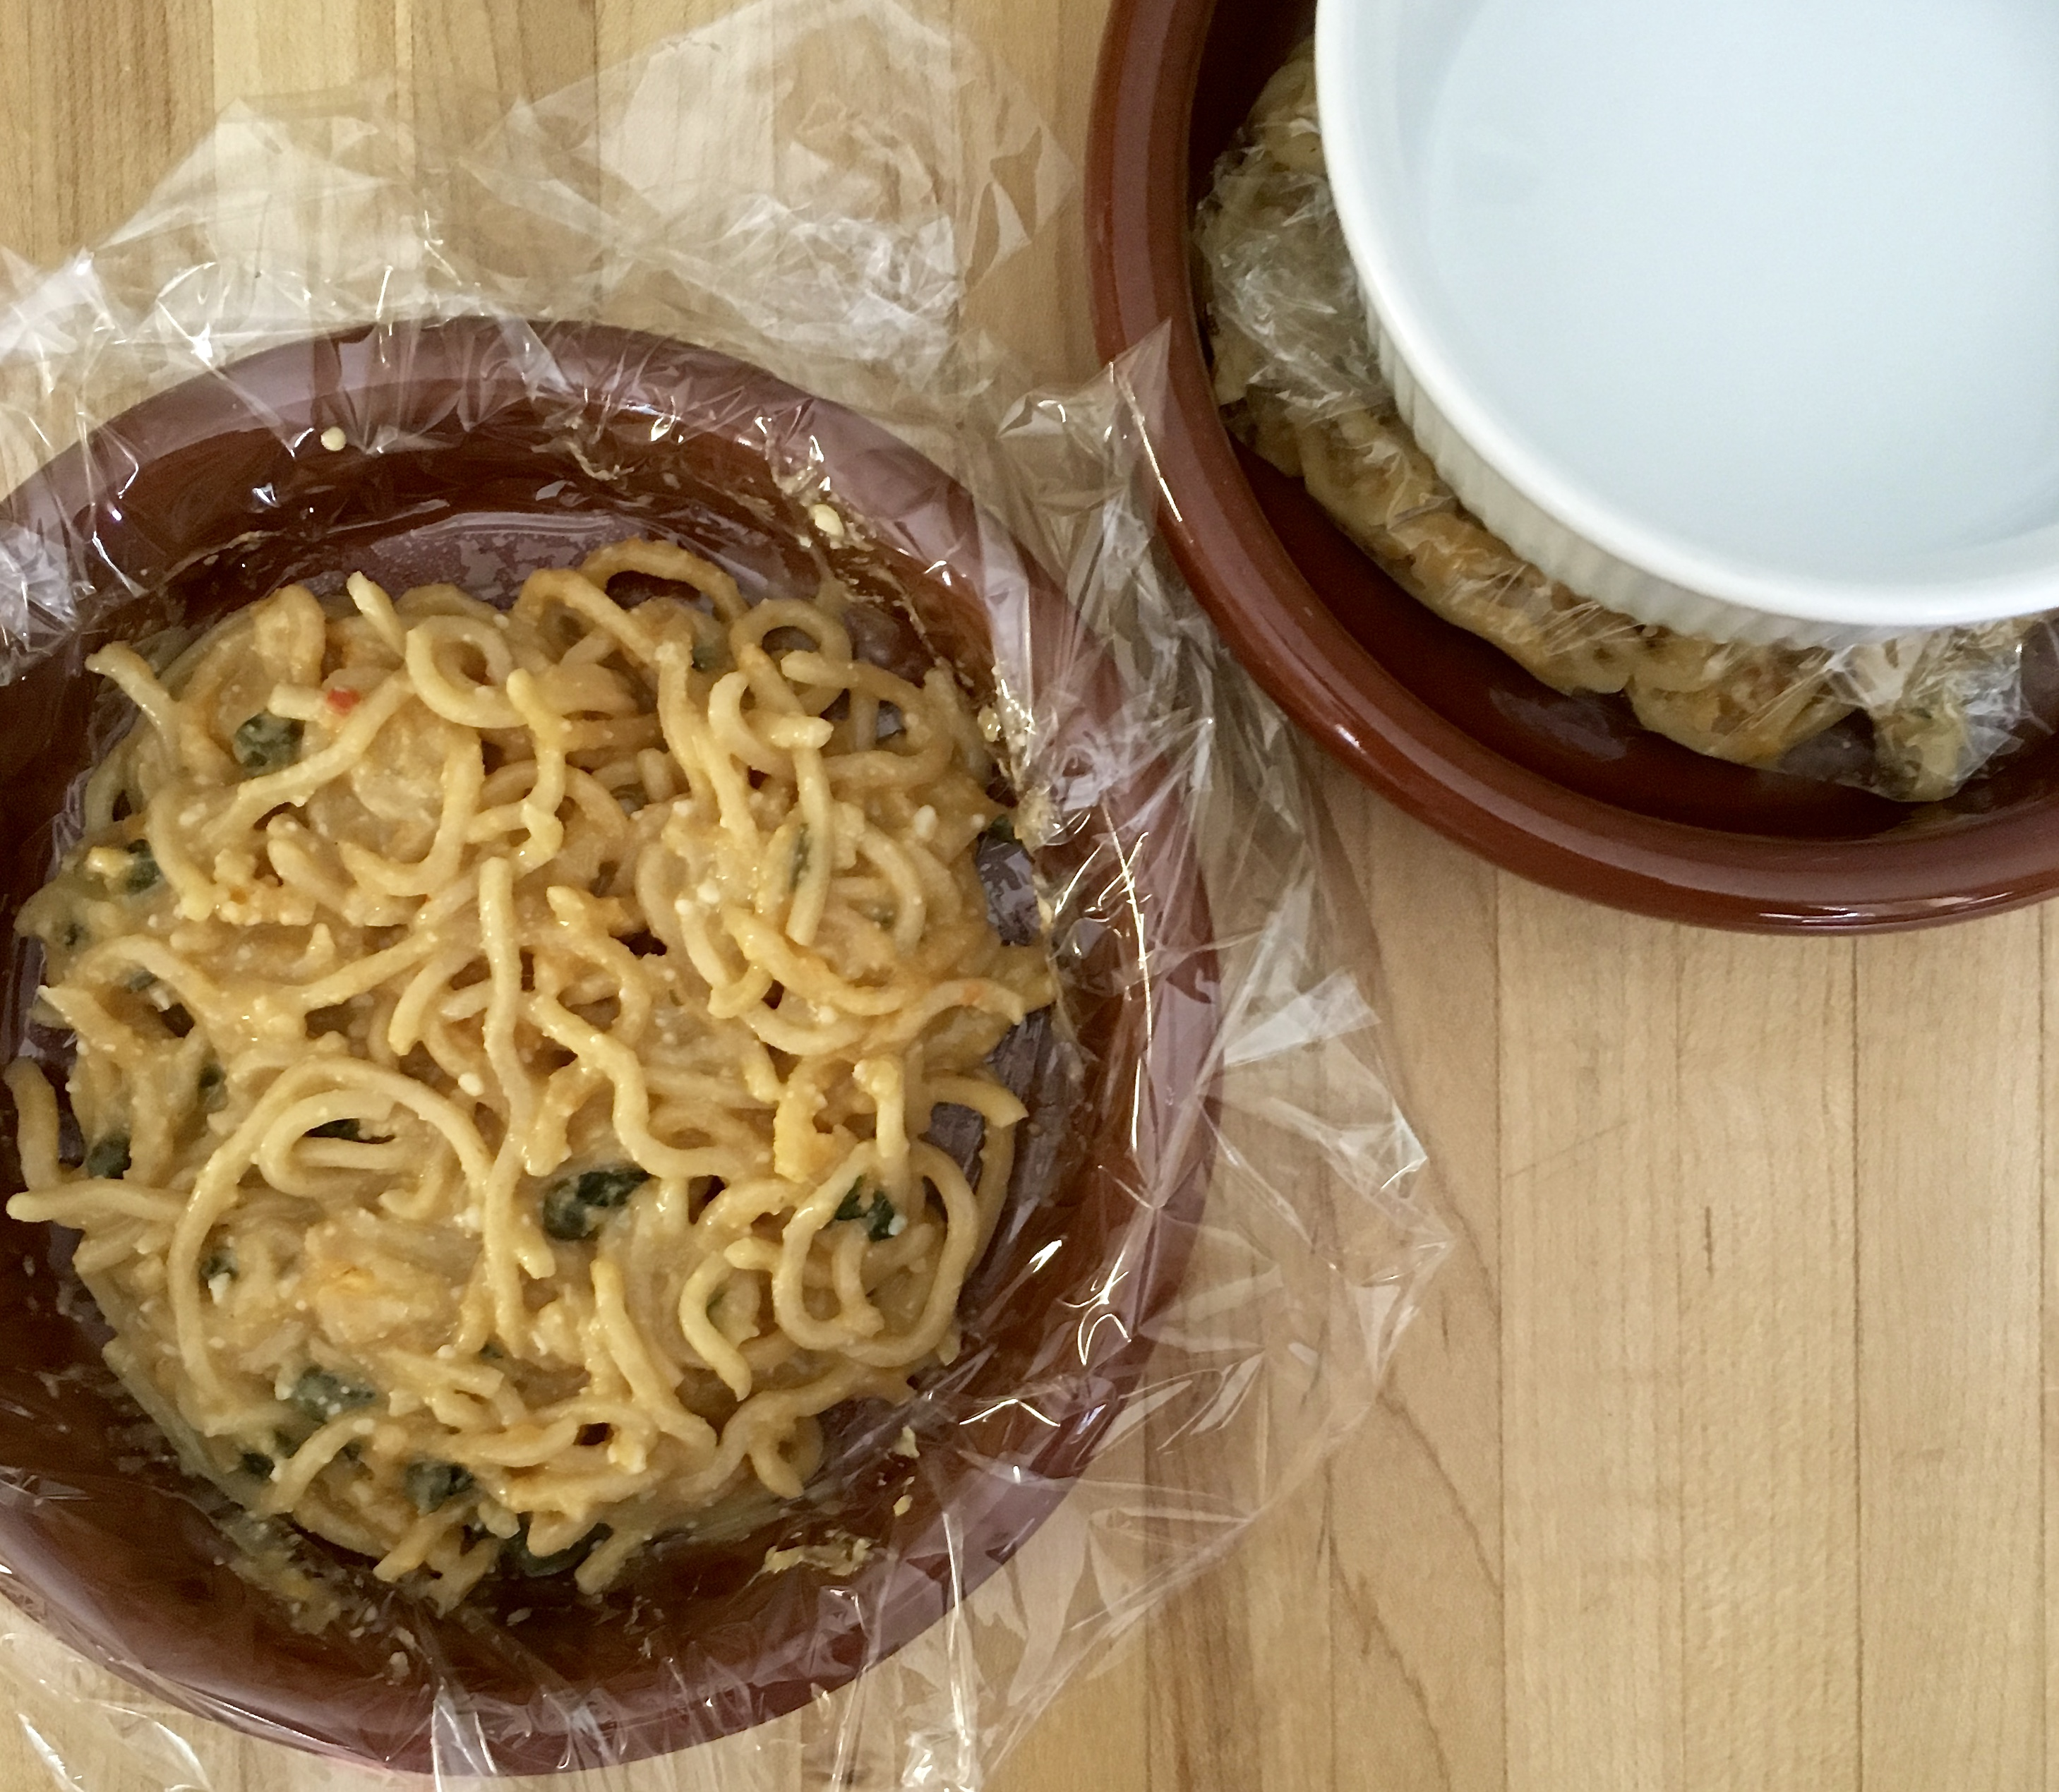 cooked noodles for bun